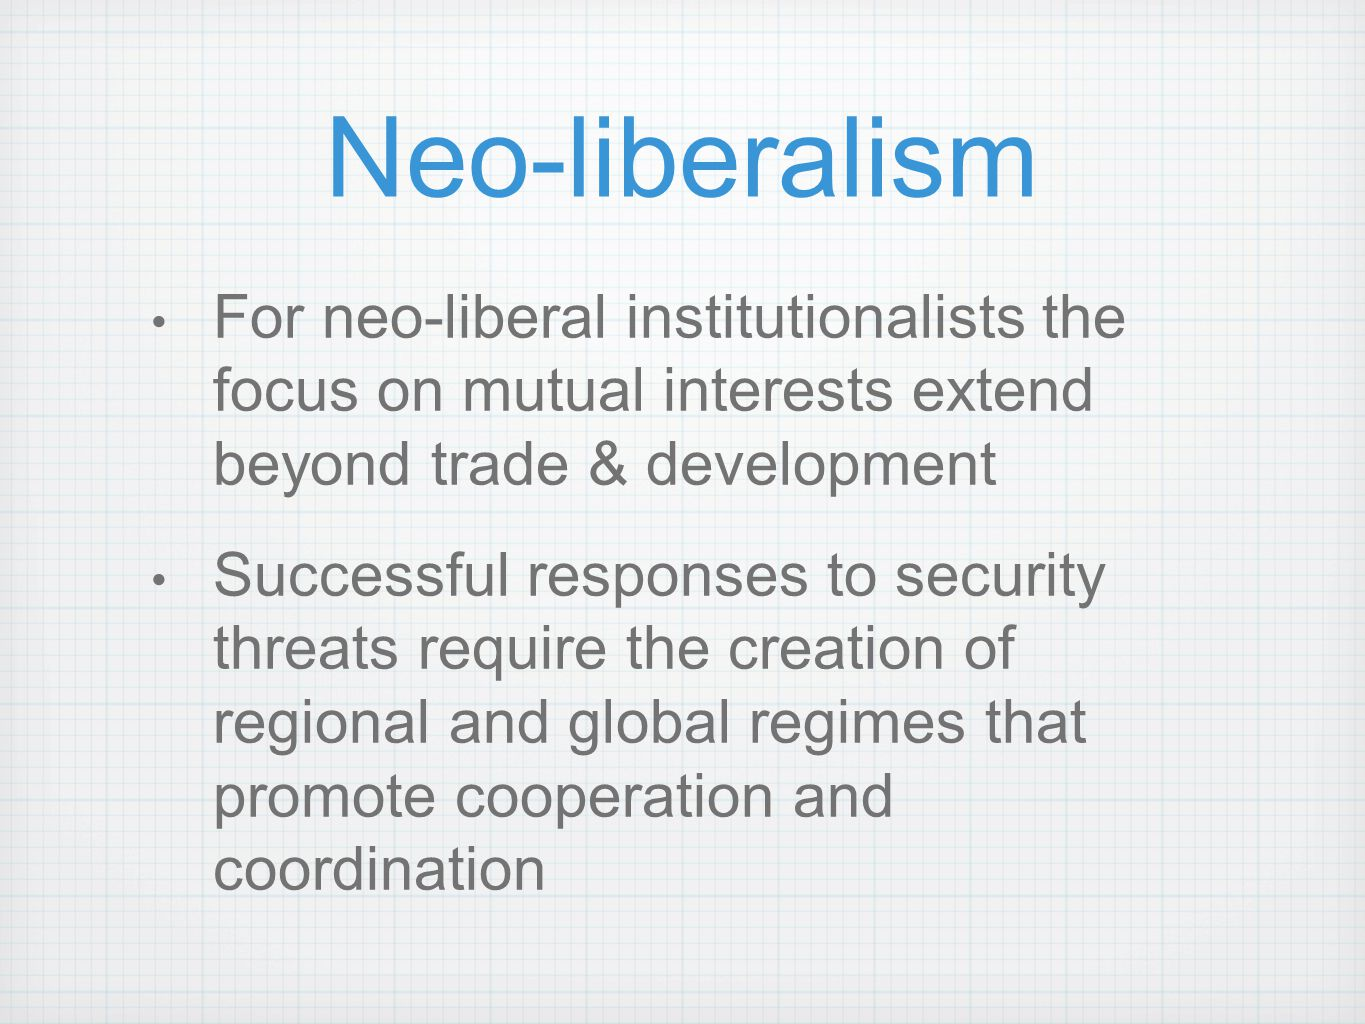 Neo-liberalism For neo-liberal institutionalists the focus on mutual interests extend beyond trade & development.